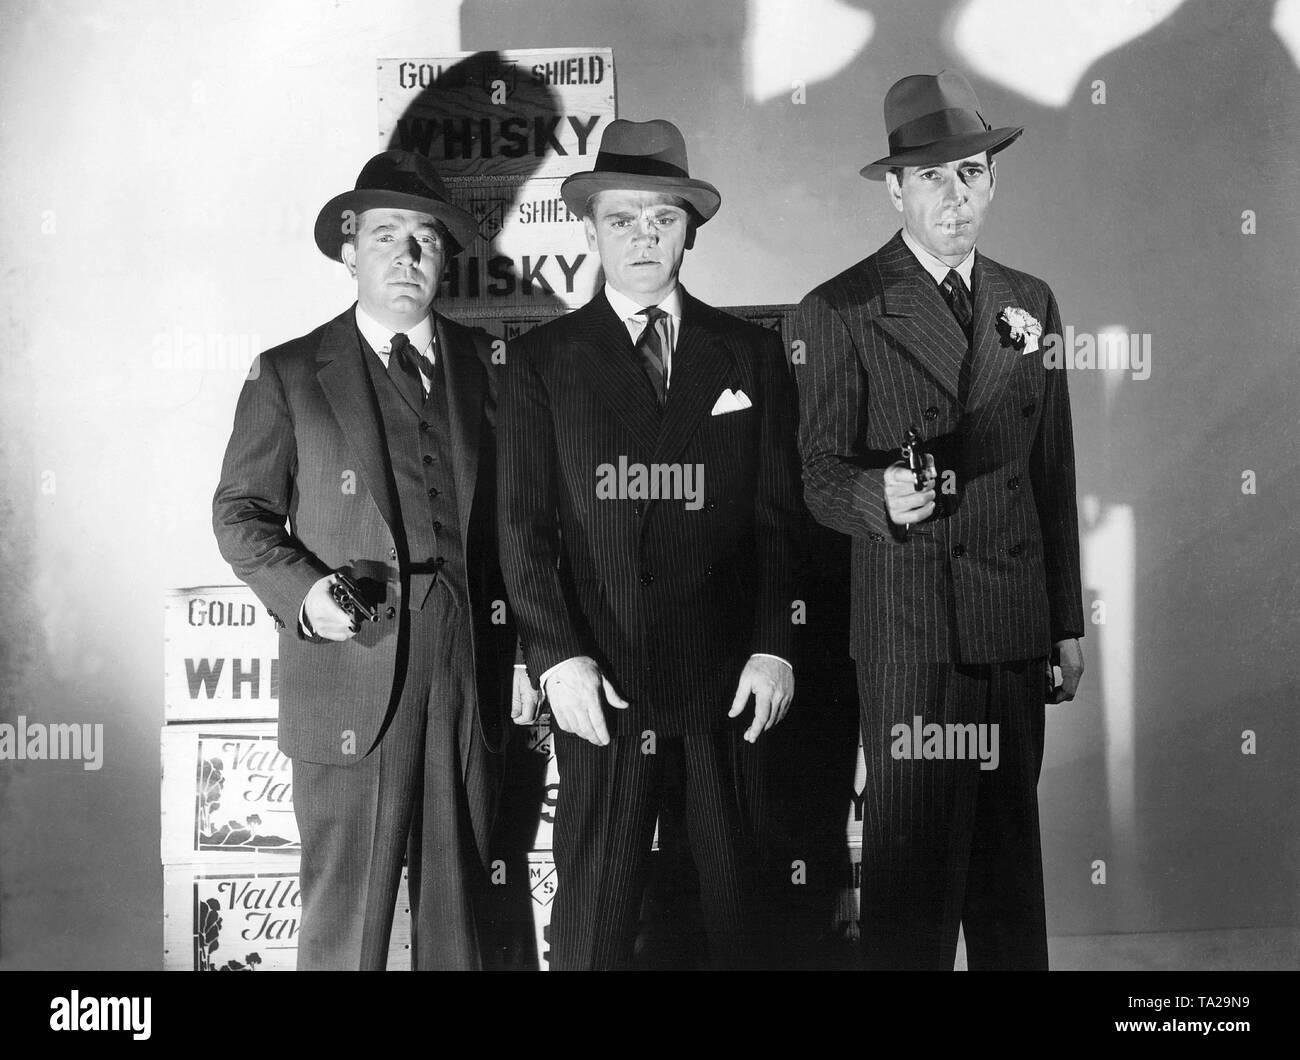 Jeffrey Lynn, James Cagney and Humphrey Bogart in 'The Roaring Twenties', directed by Raoul Walsh, USA 1939. - Stock Image